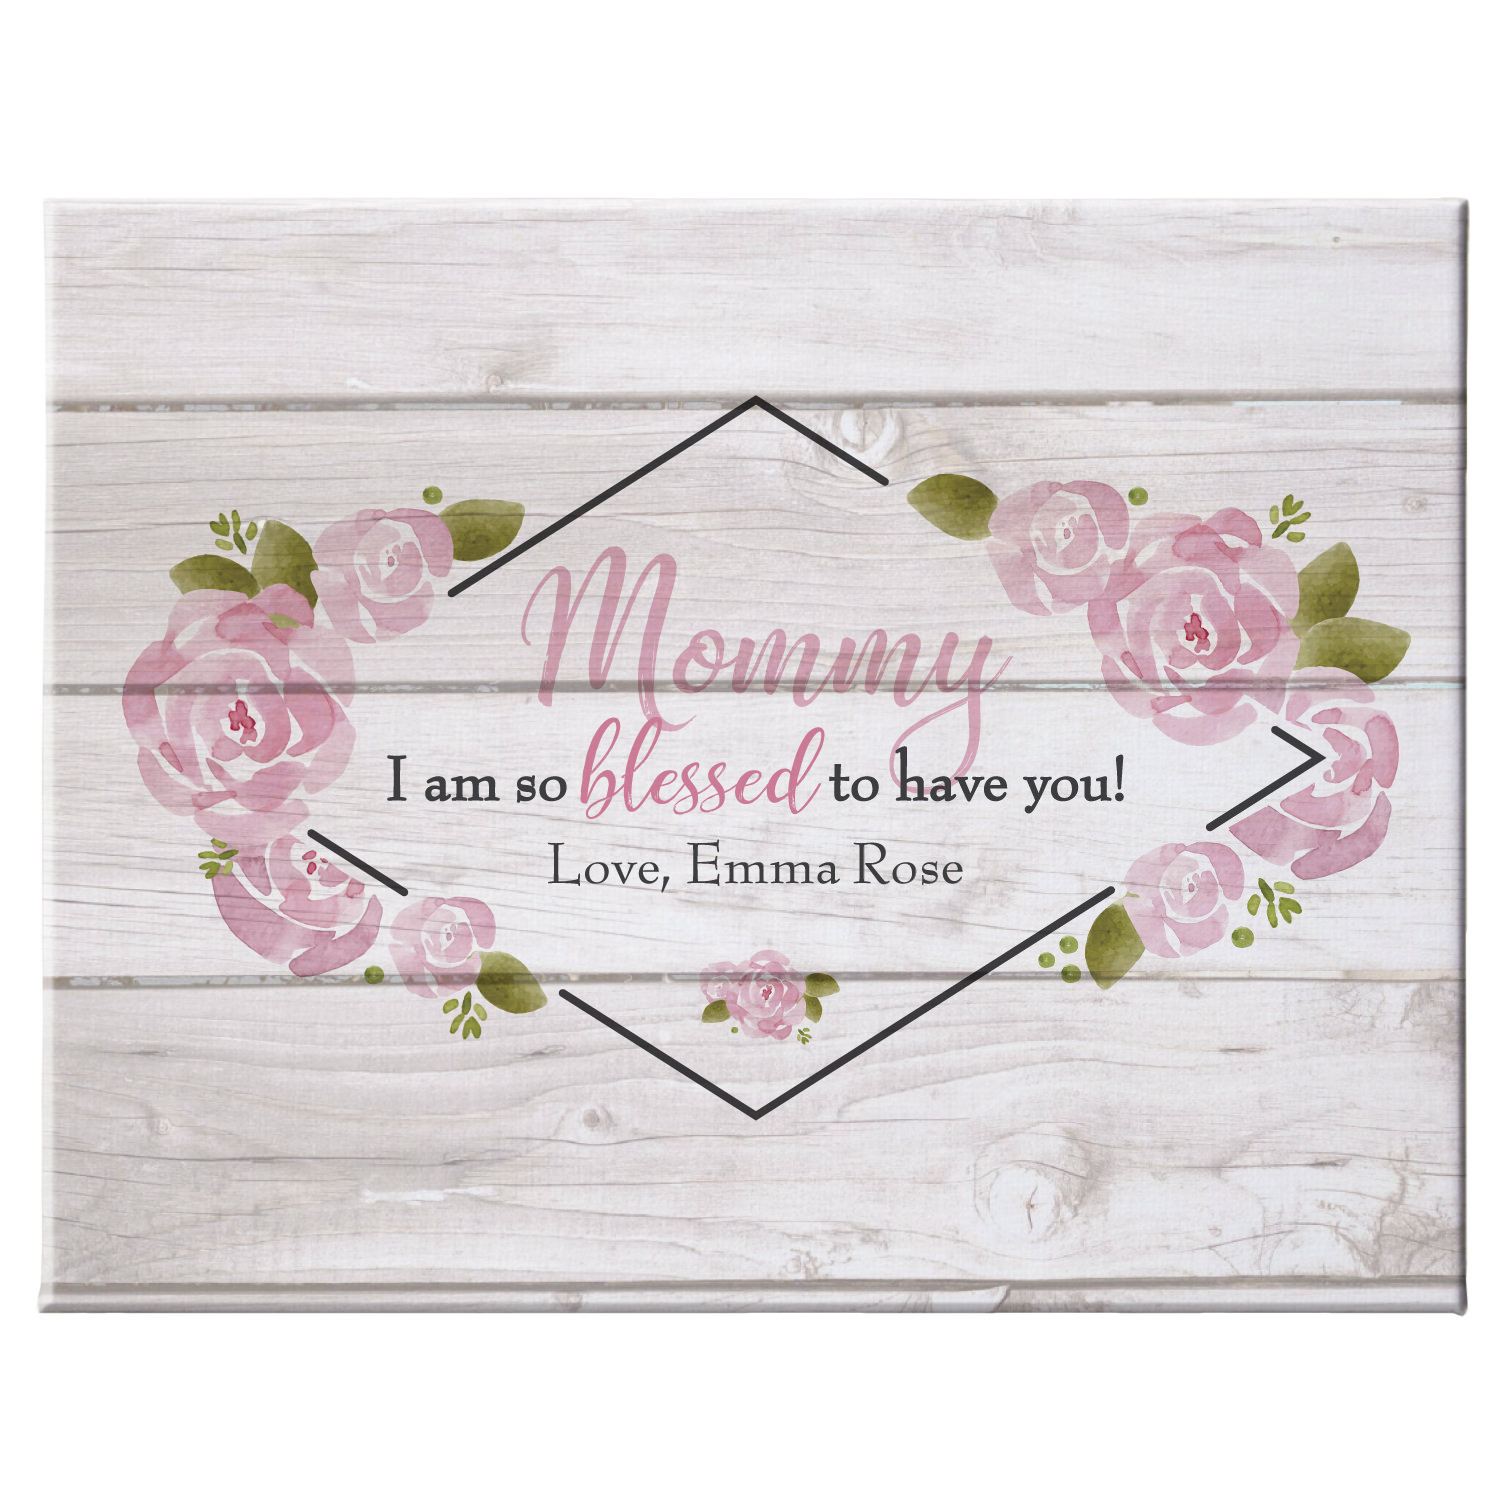 Personalized So Blessed Canvas - Available in Single Child or Multiple and 2 Size Options